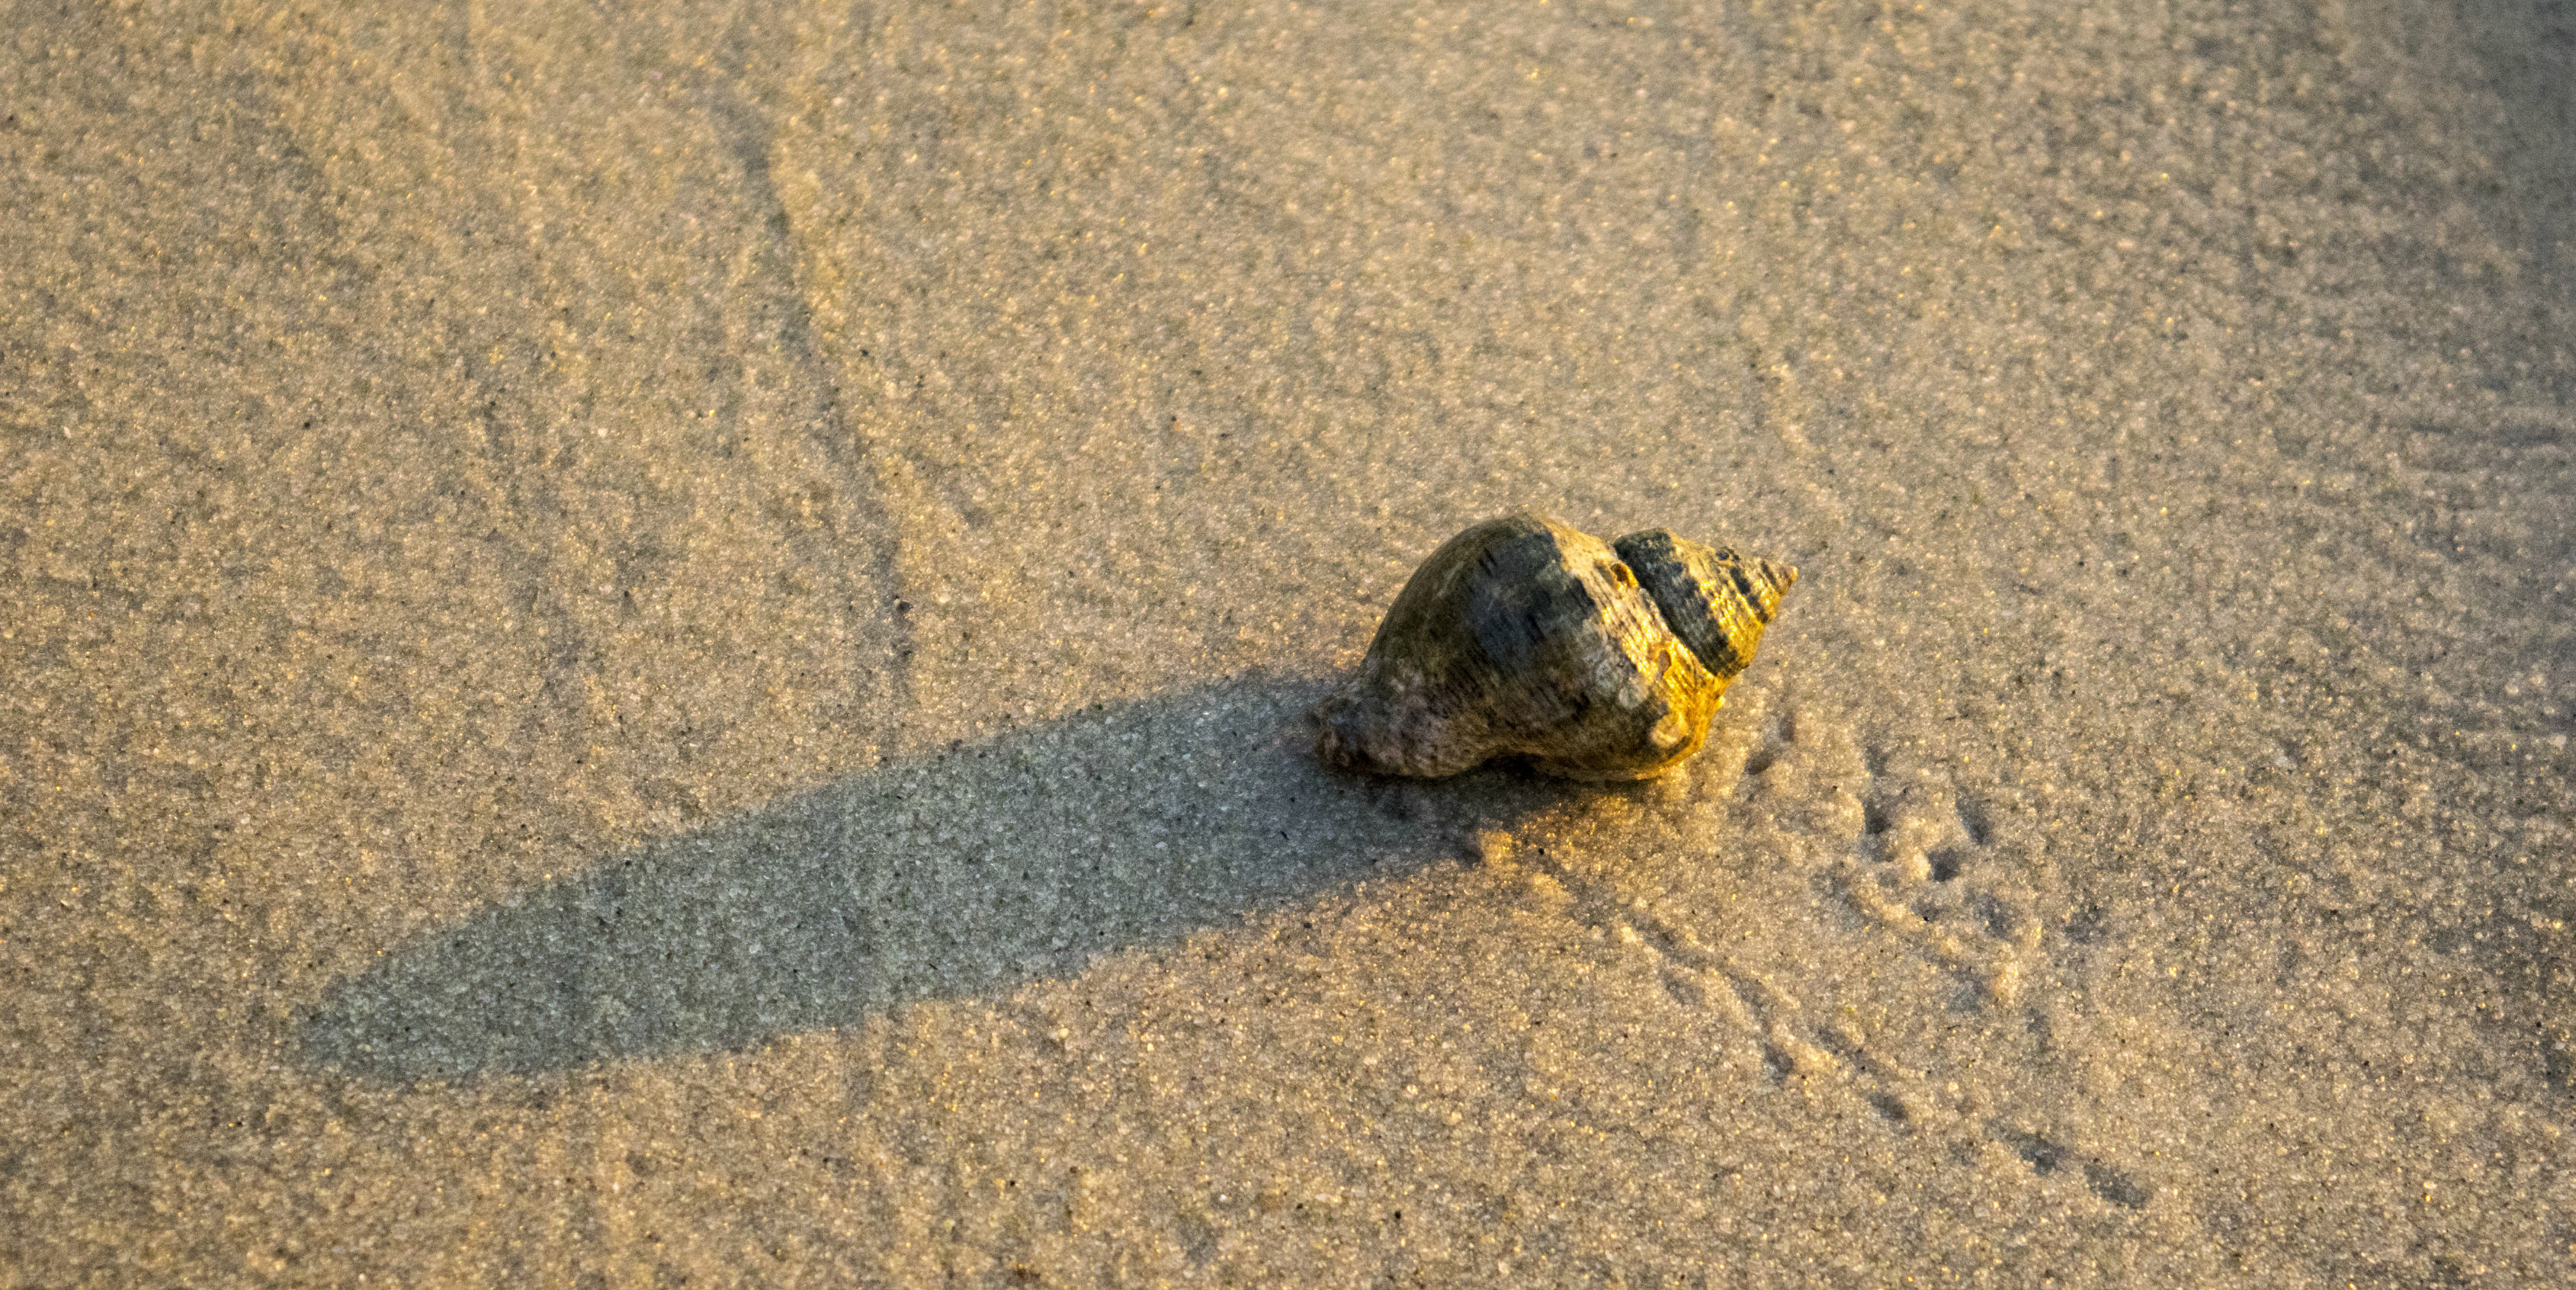 A hermit crab crawls across a beach | responsible travel